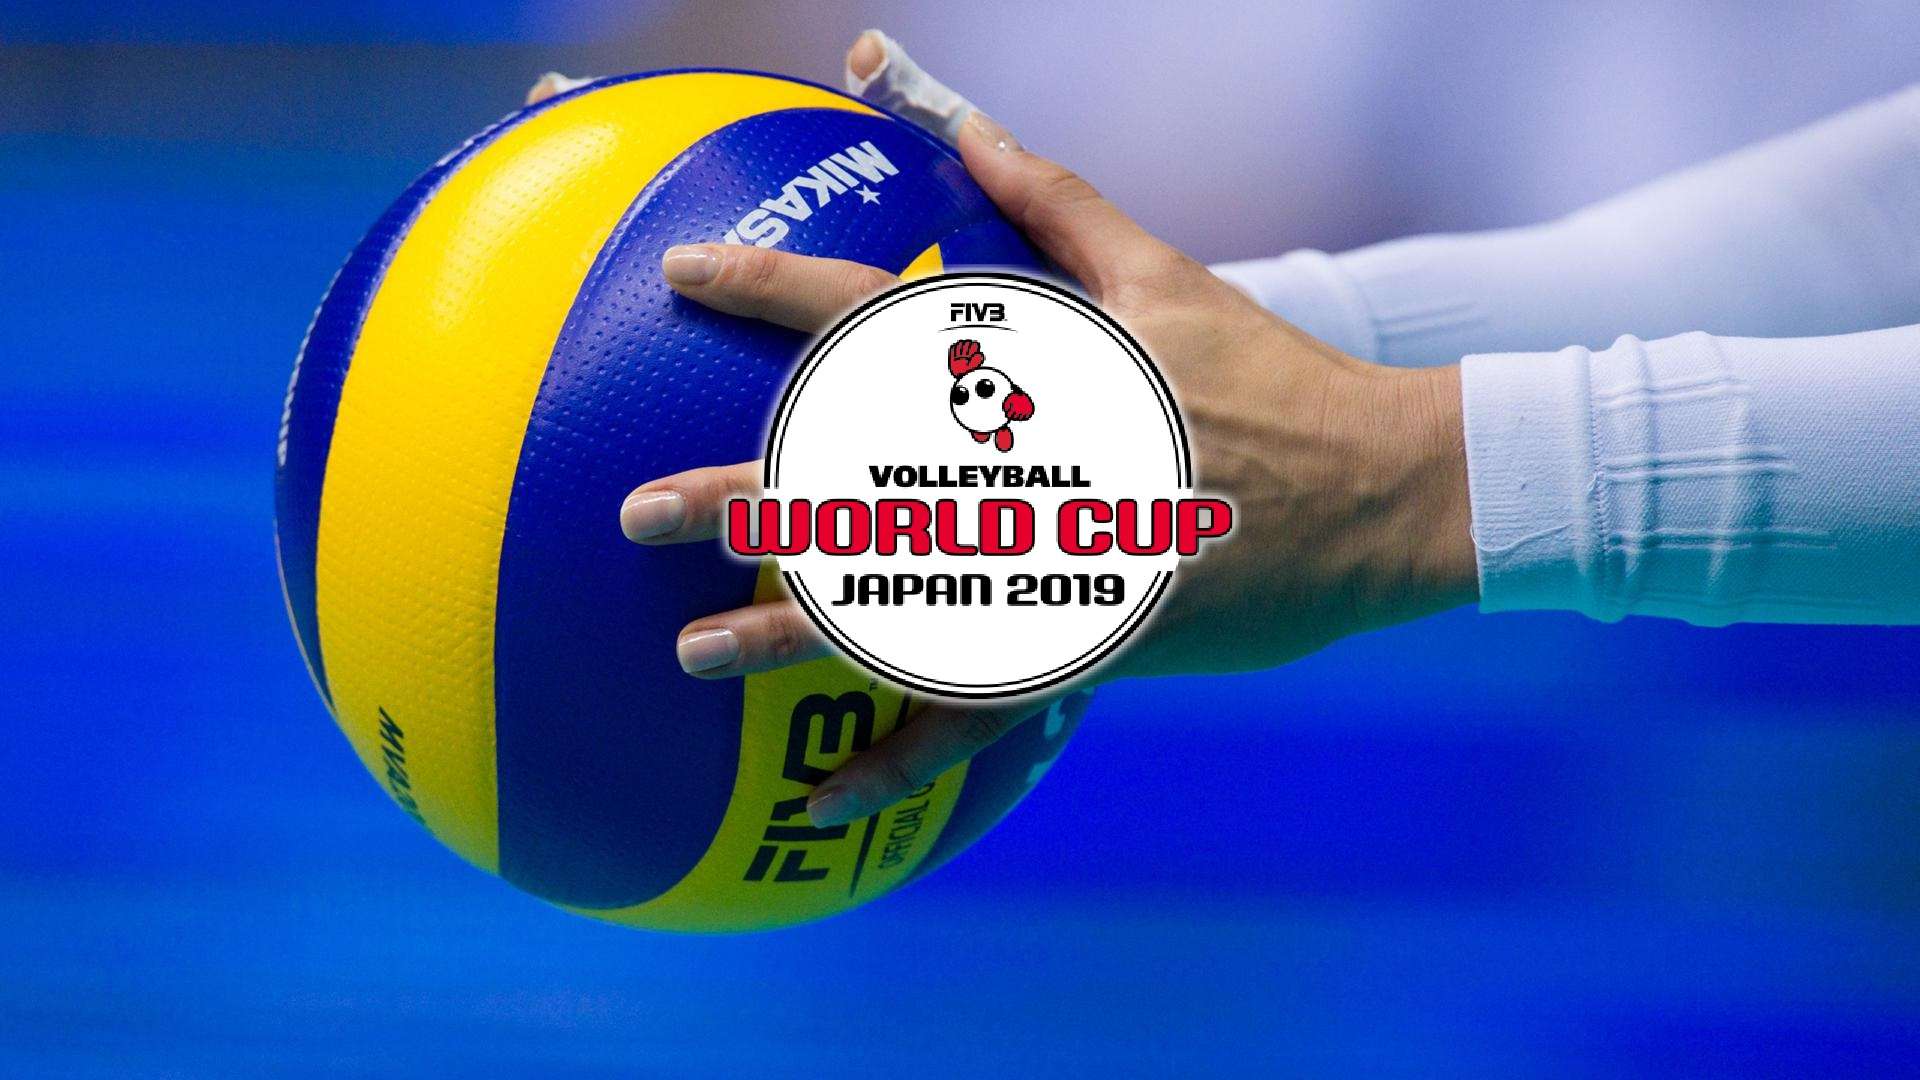 Mondiali per club volley 2019 su Sky Sport | Programma, calendario, palinsesto tv